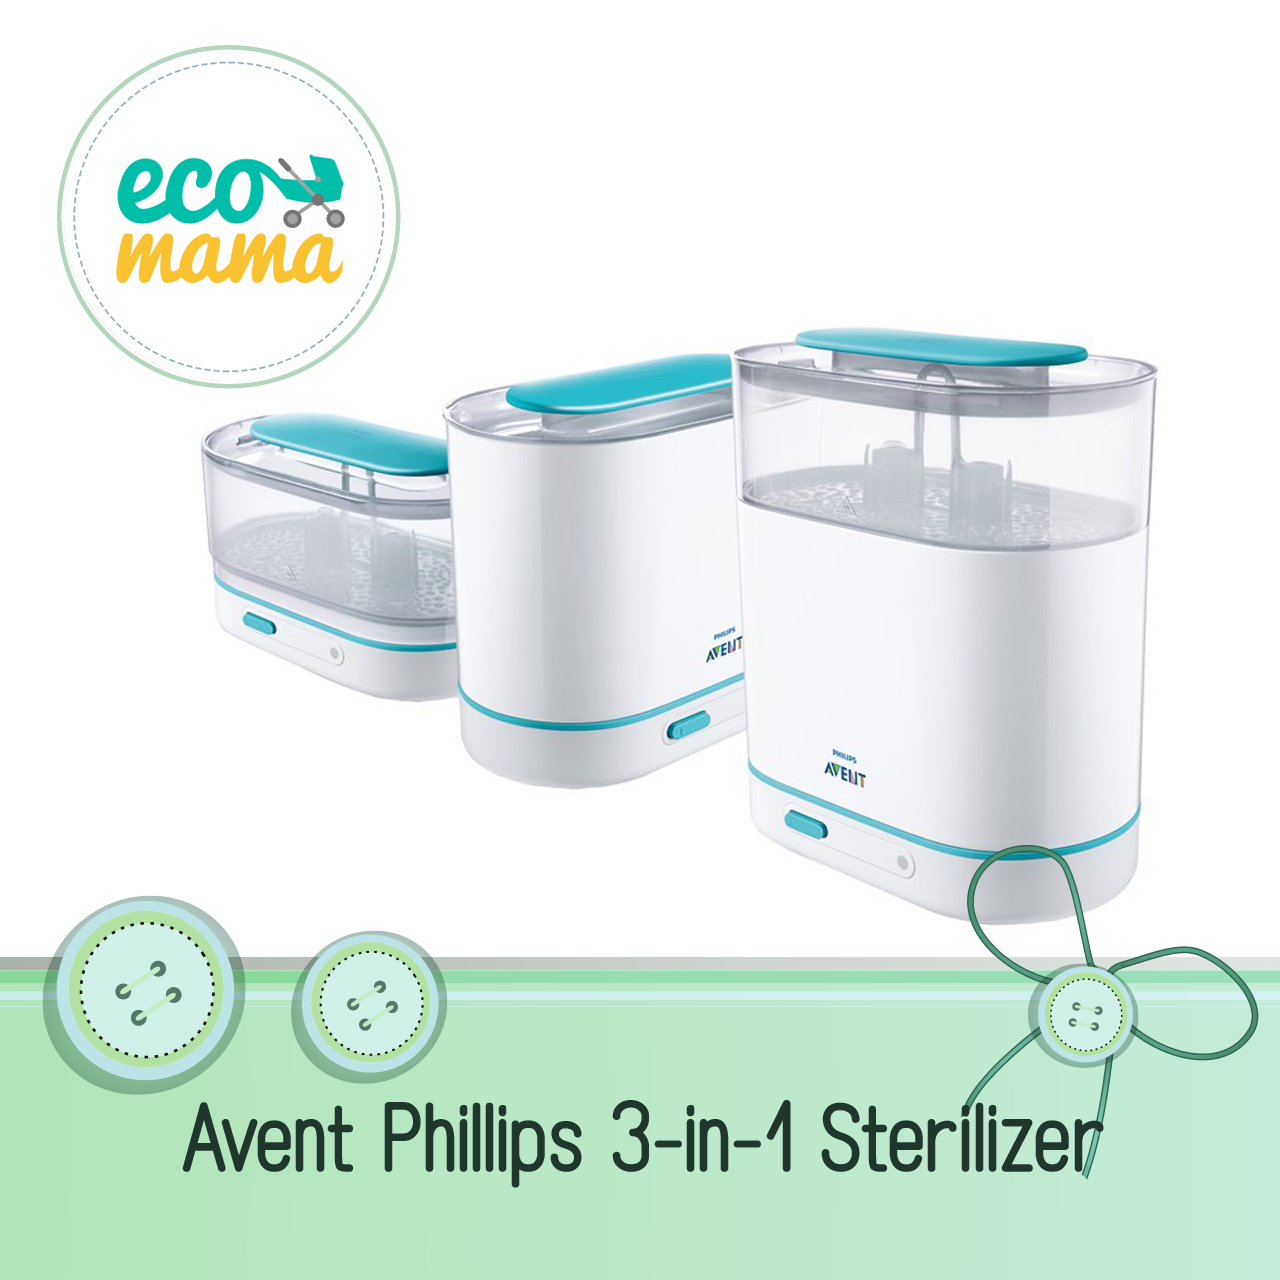 Avent Philips 3 in 1 Electric Steam Sterilizer